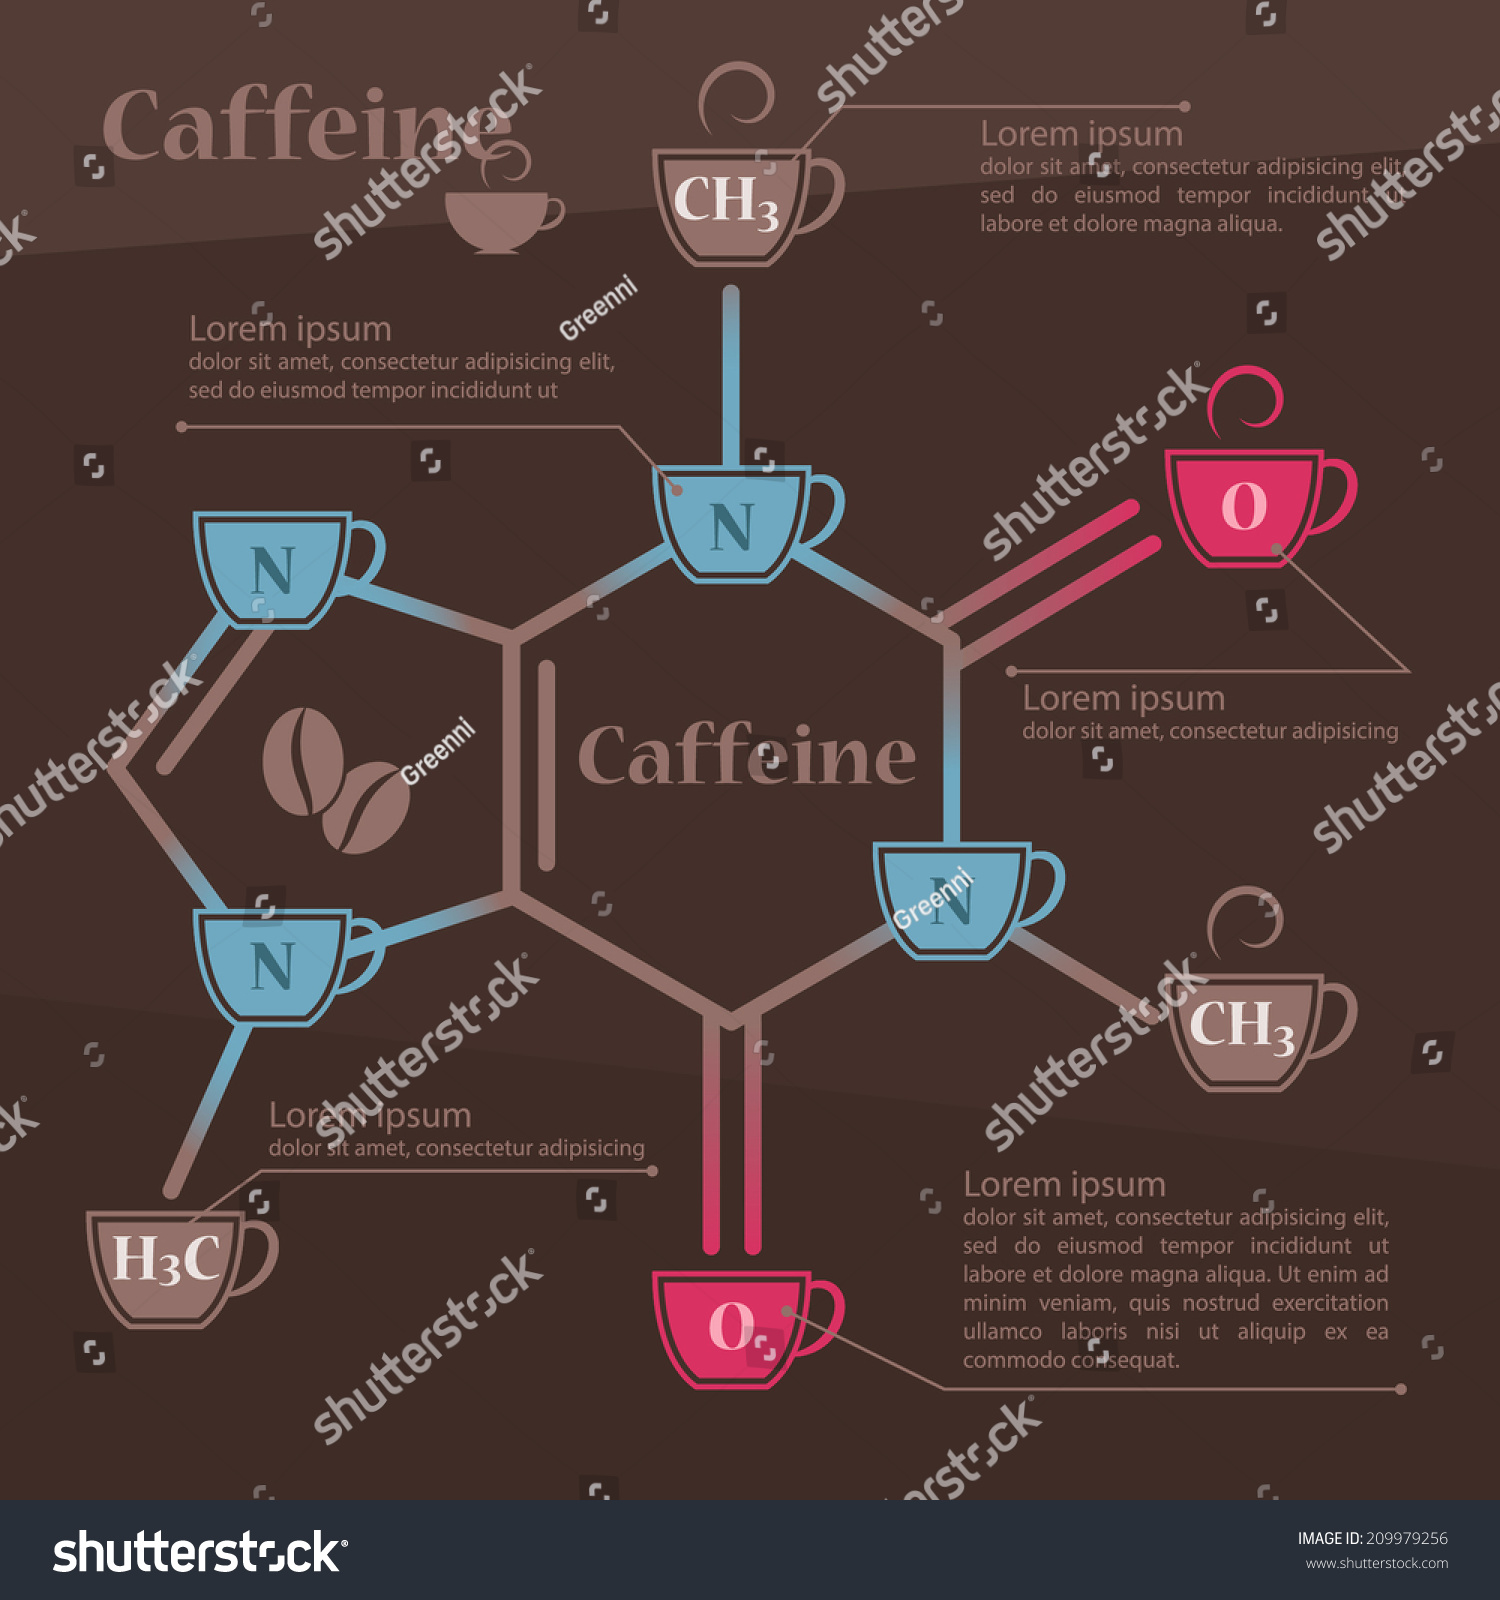 stock-vector-caffeine-chemical-molecule-